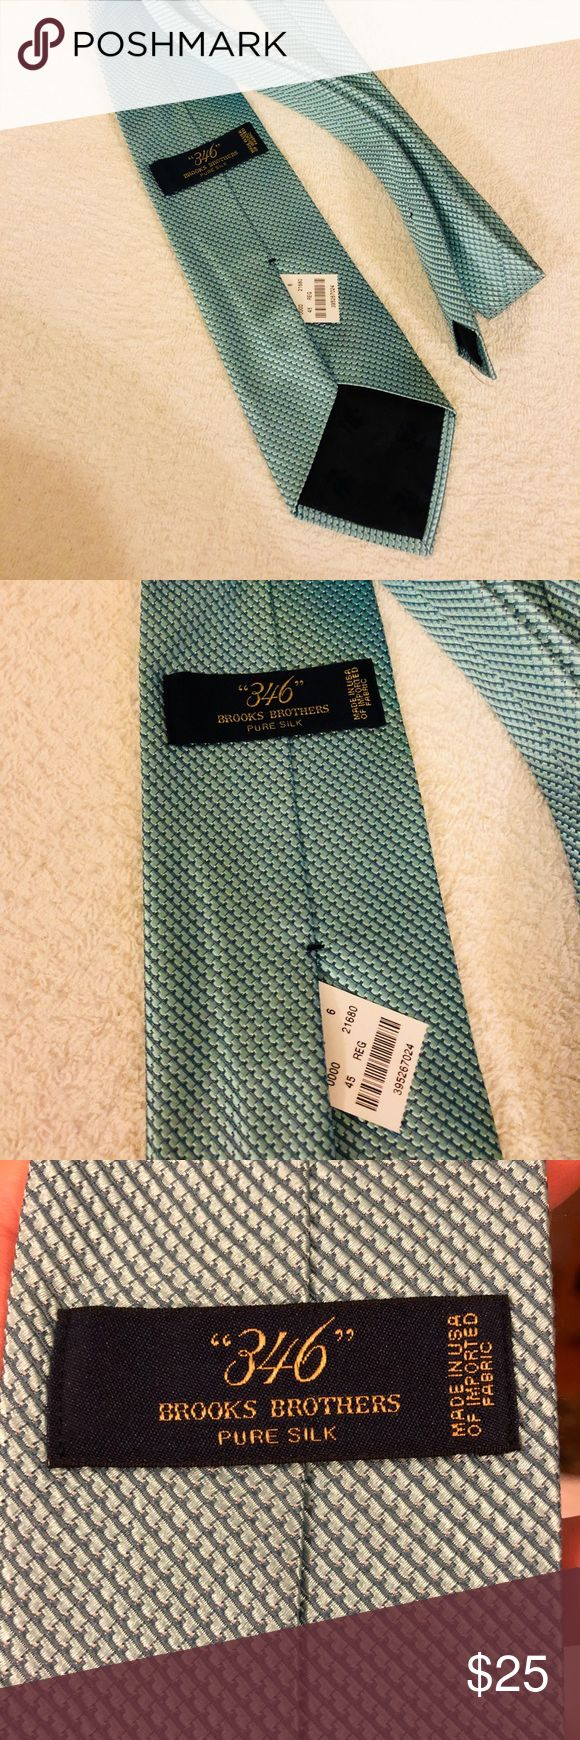 Brooks Brothers NWT Seafoam Green Check Tie Brooks Brothers Seafoam Green Check Woven Silk Necktie! NEW WITH TAGS! Please make reasonable offers and bundle! Ask questions! Brooks Brothers Accessories Ties